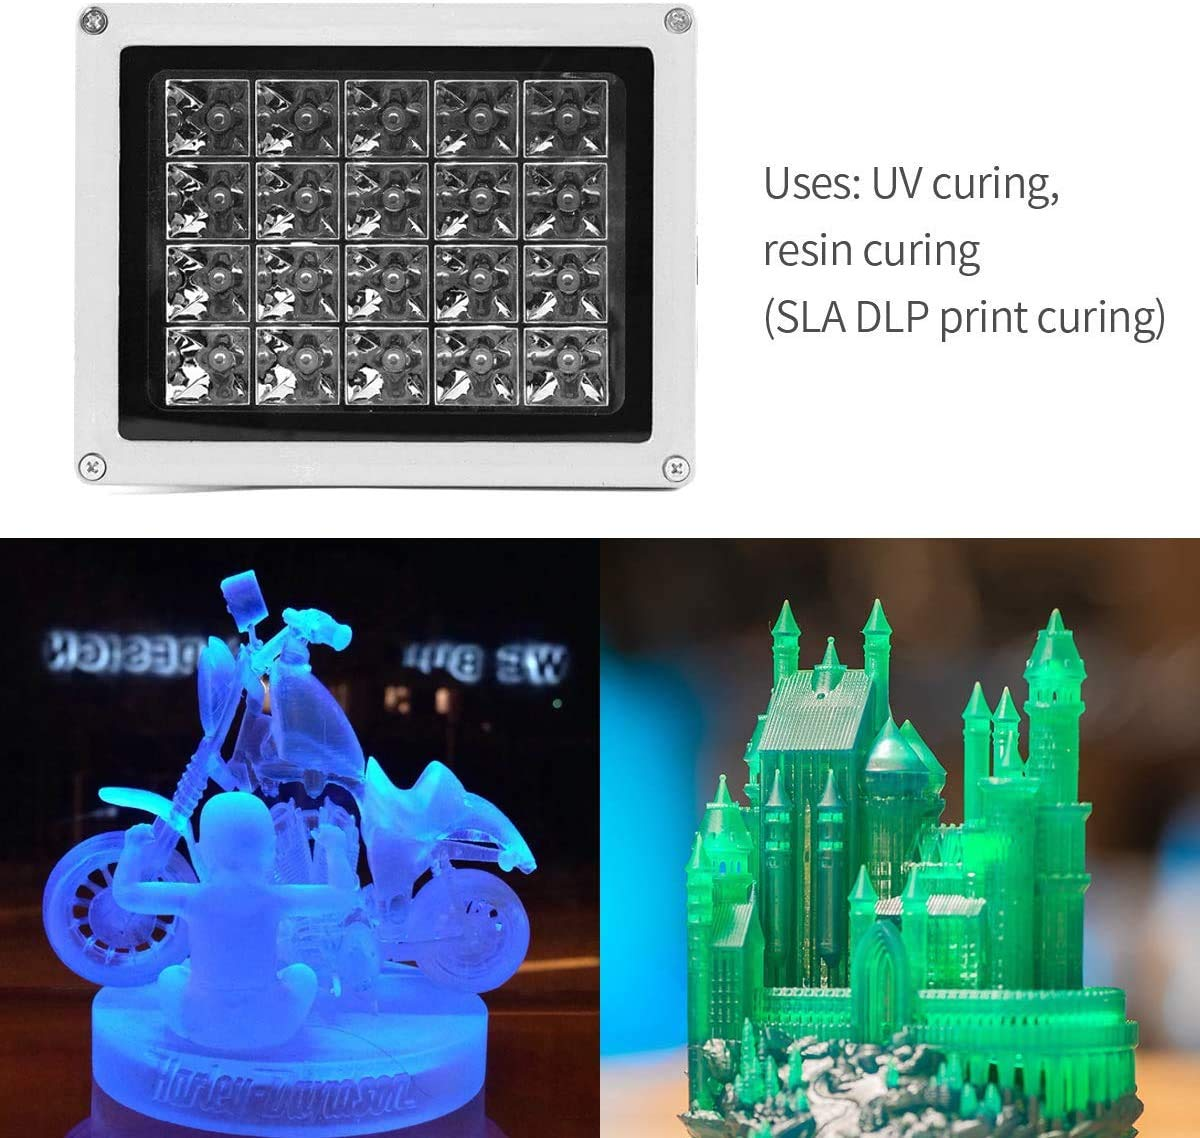 medical therapy 20W 3D Printer Solidify Photosensitive Resin For UV curing SEAAN- UV resin curing light,405nm UV resin for SLA//DLP photochemical catalysis cell phone LCD screen